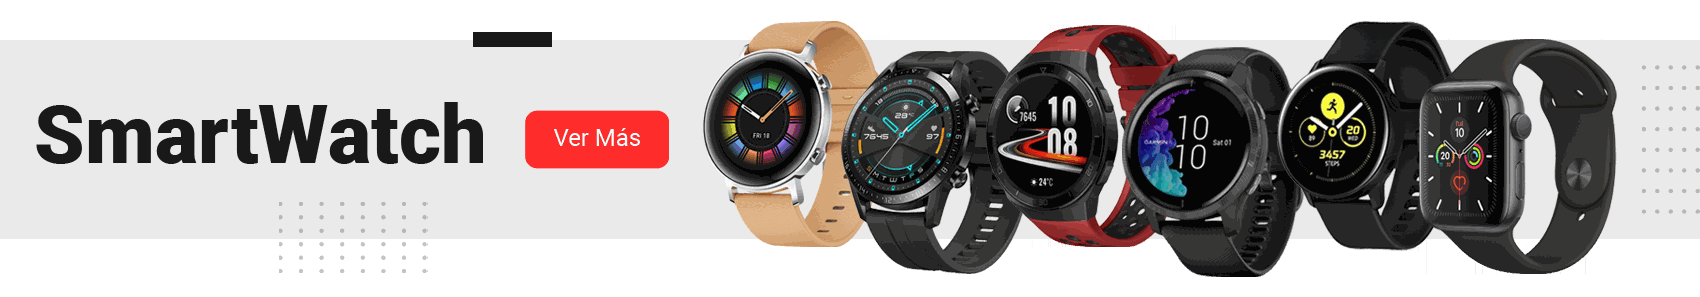 SmartWatch Costa Rica